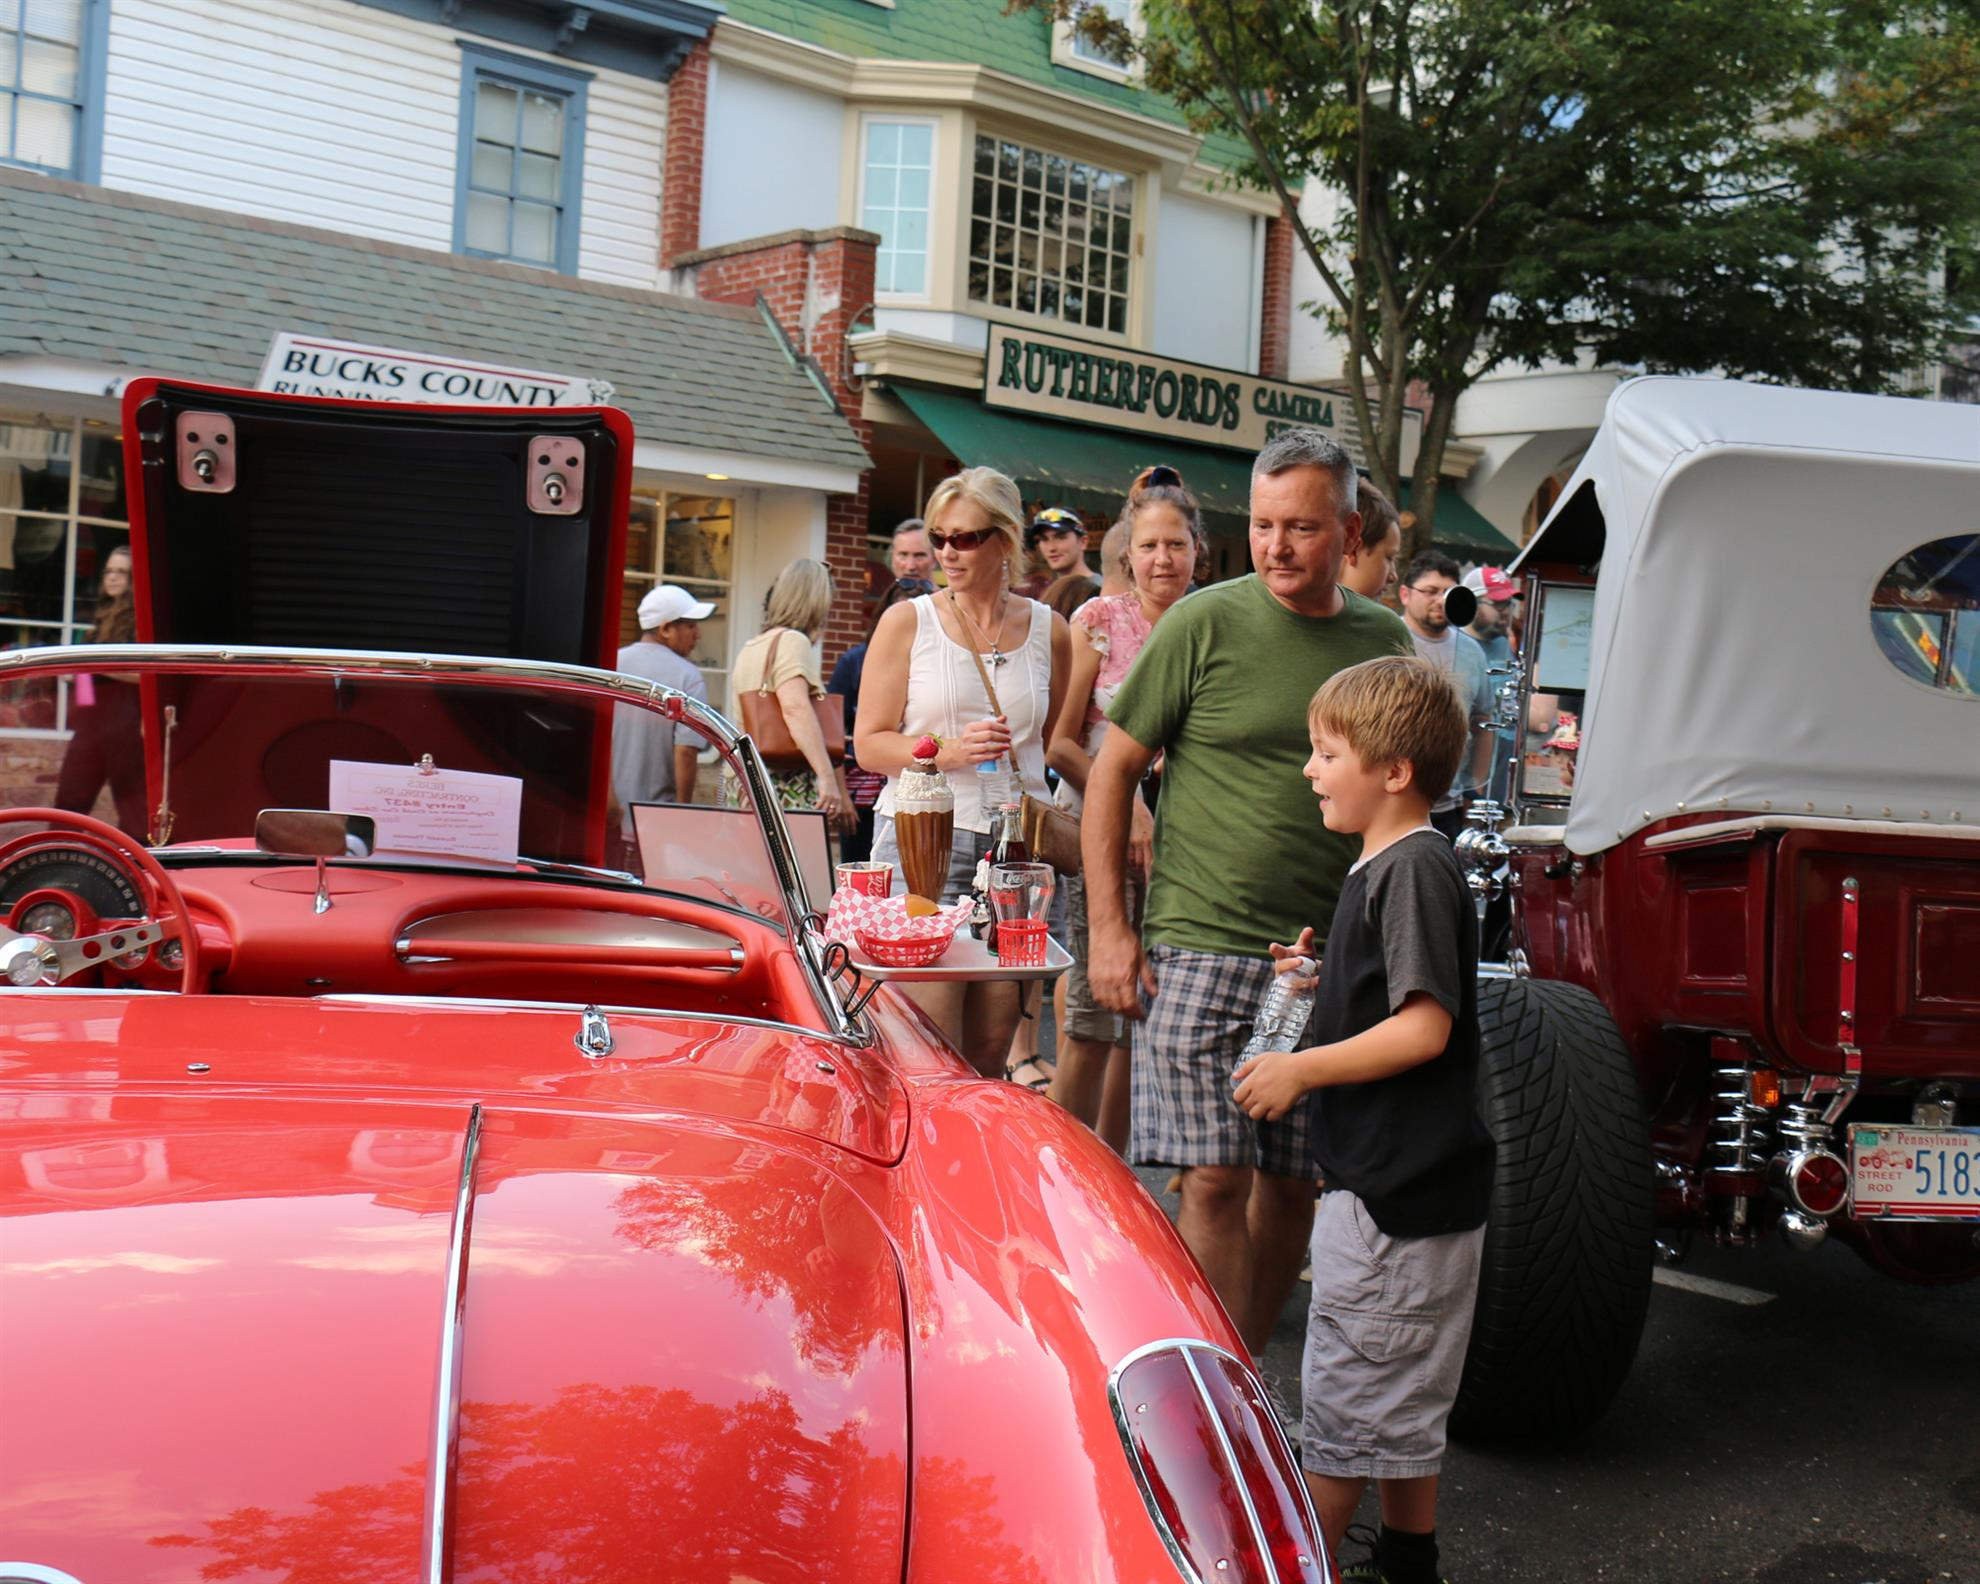 Stories Rotary Club Of Doylestown Buenos Ninos Vintage Mini Dress Brown The Thanks Our Generous Sponsors Amazing Participants Enthusiastic Visitors And Wonderful Borough For Its Support In Making This Years Event